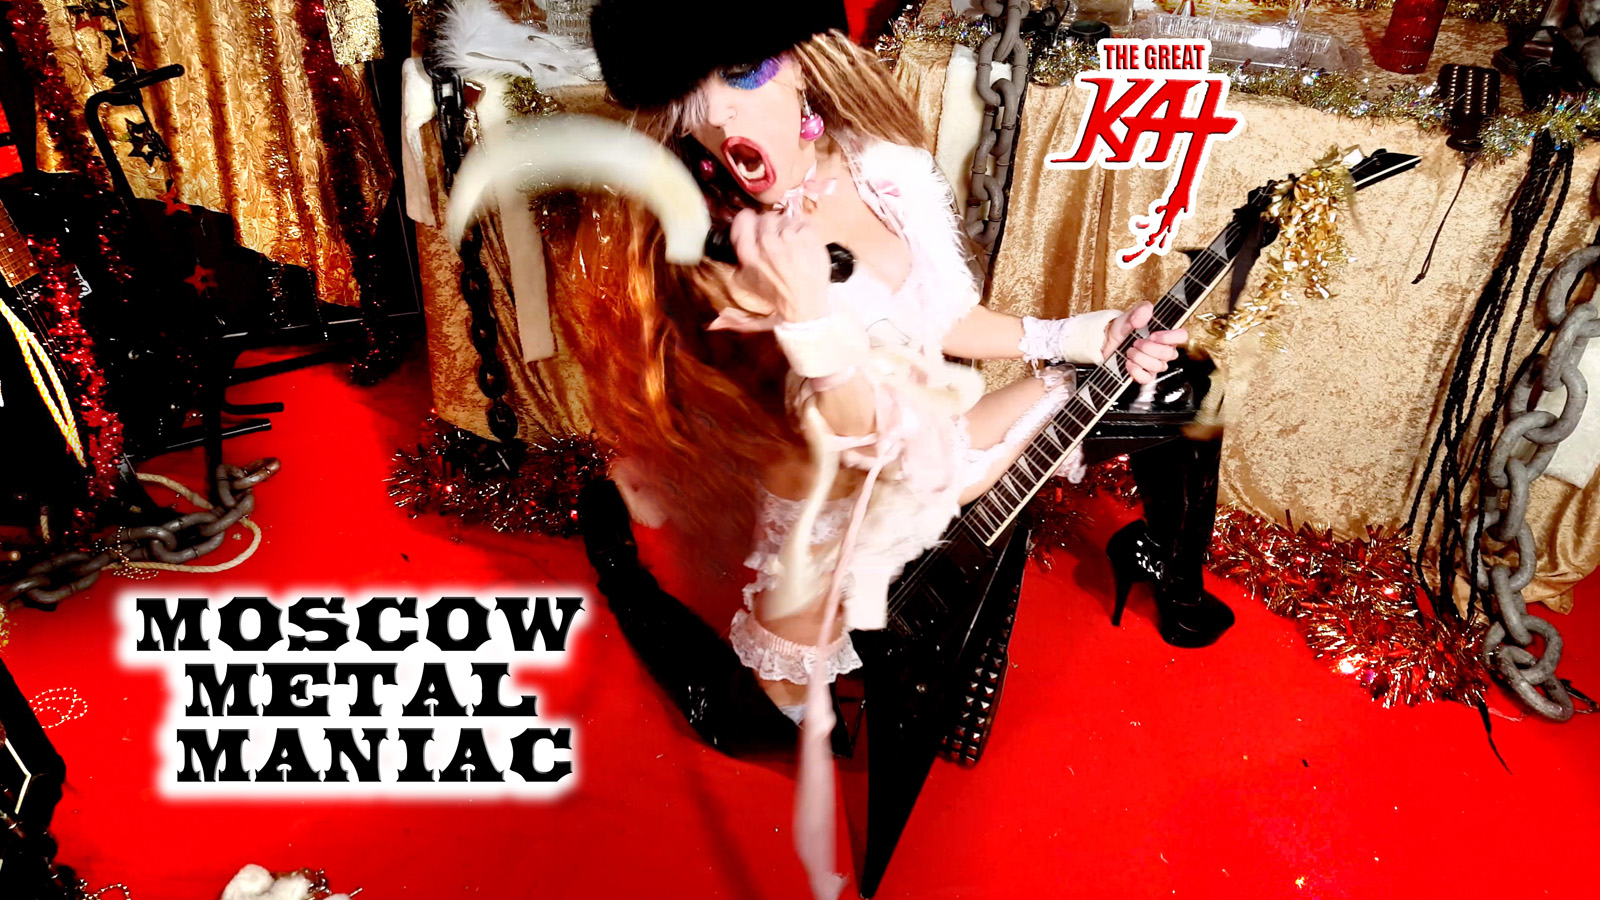 """MOSCOW METAL MANIAC! From """"CHEF GREAT KAT COOKS RUSSIAN CAVIAR AND BLINI WITH RIMSKY-KORSAKOV"""" VIDEO!!"""